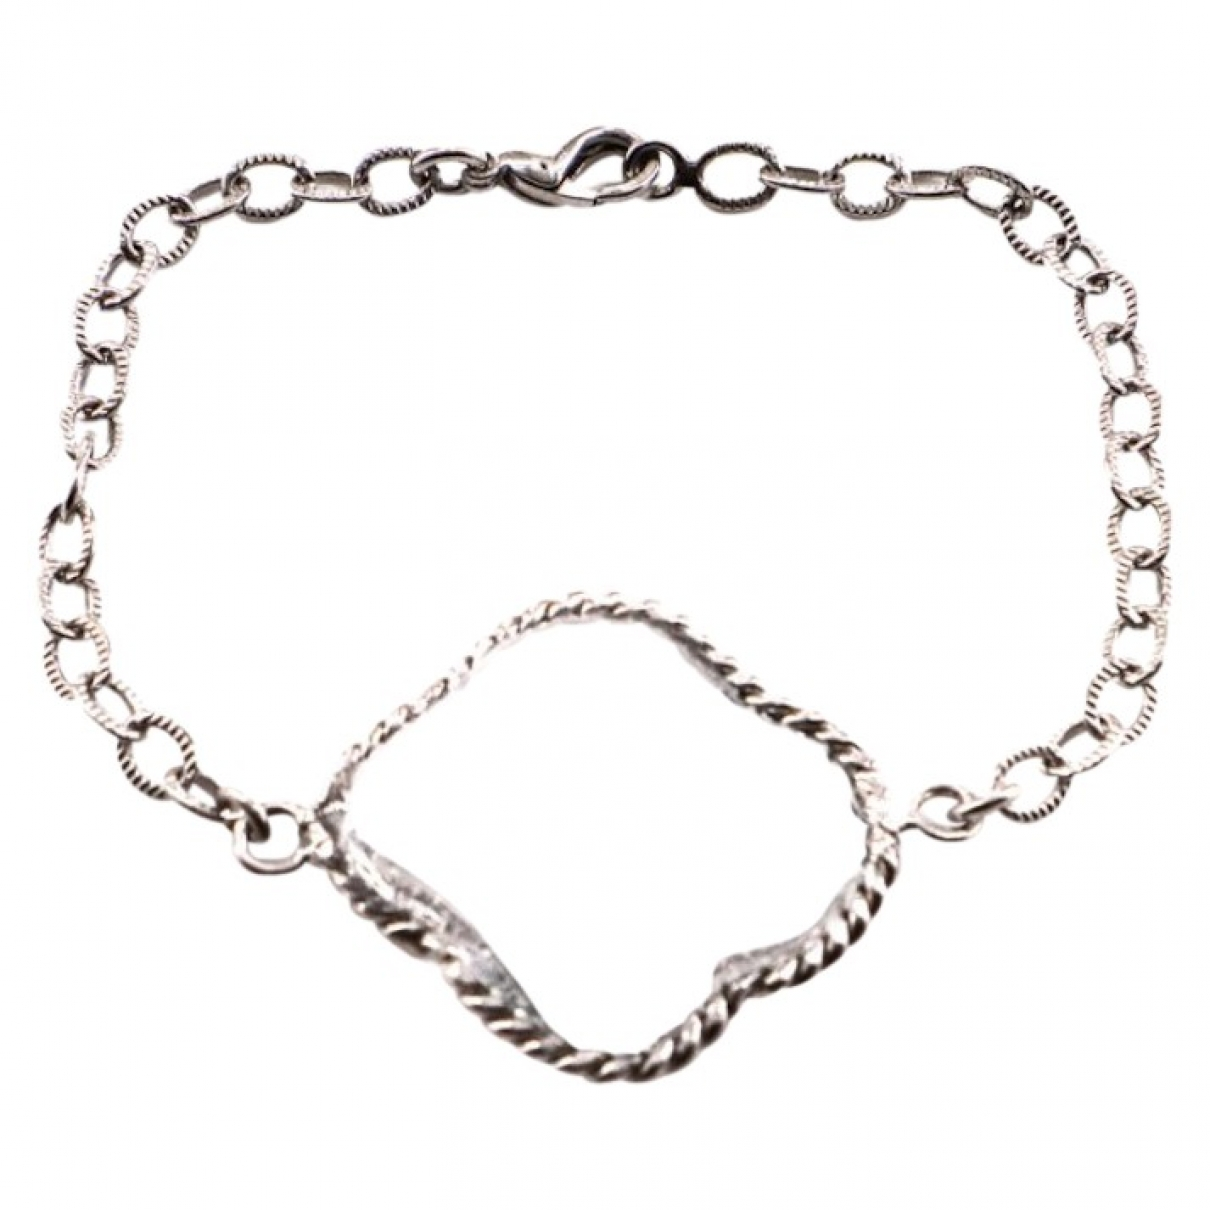 Marguerite De Valois \N Armband in  Weiss Silber